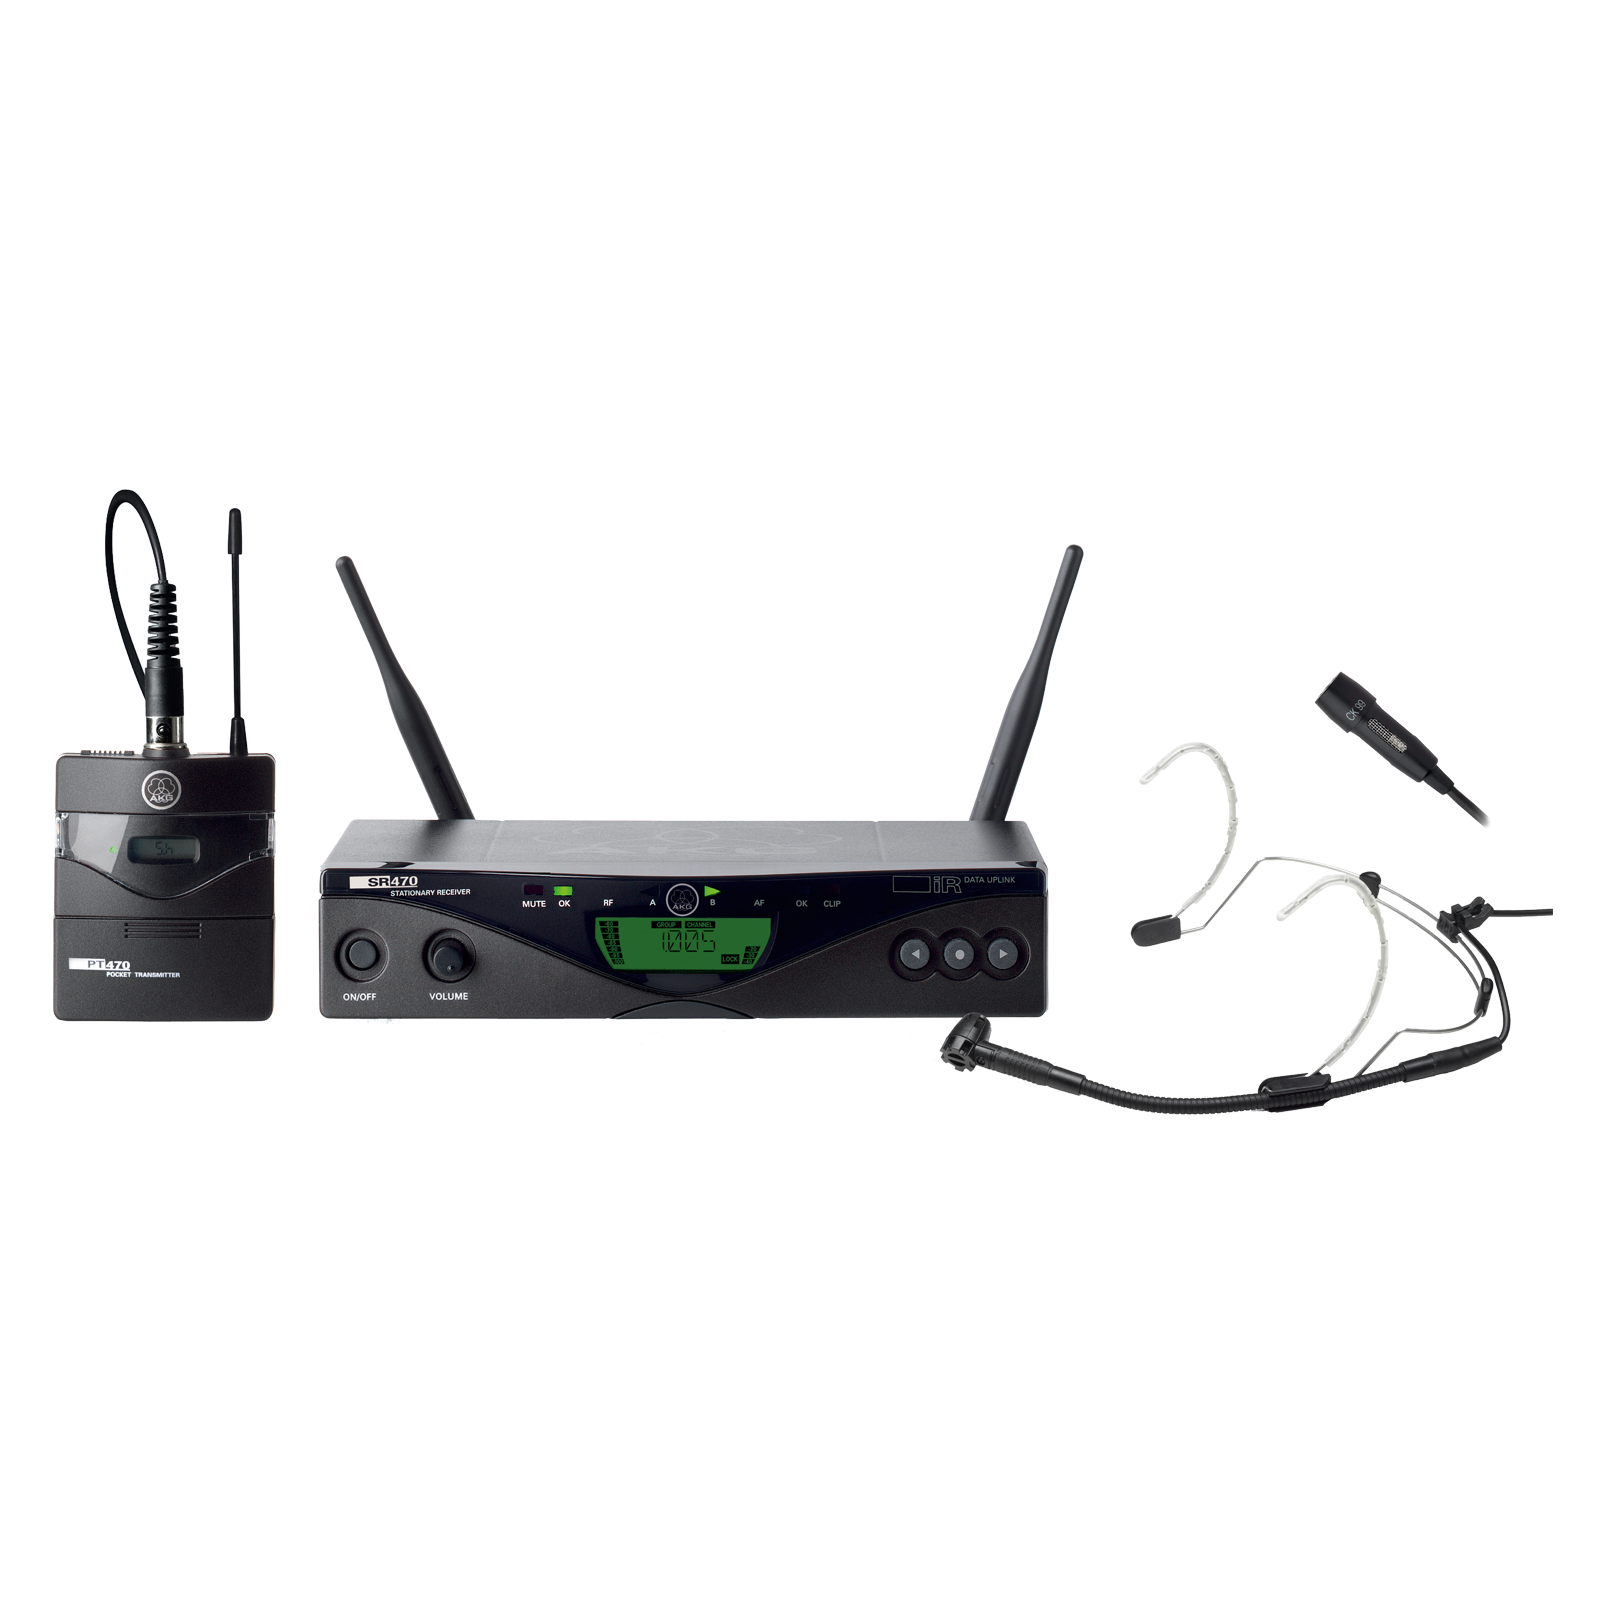 WMS470 Presenter Set - Black - Professional wireless microphone system - Hero